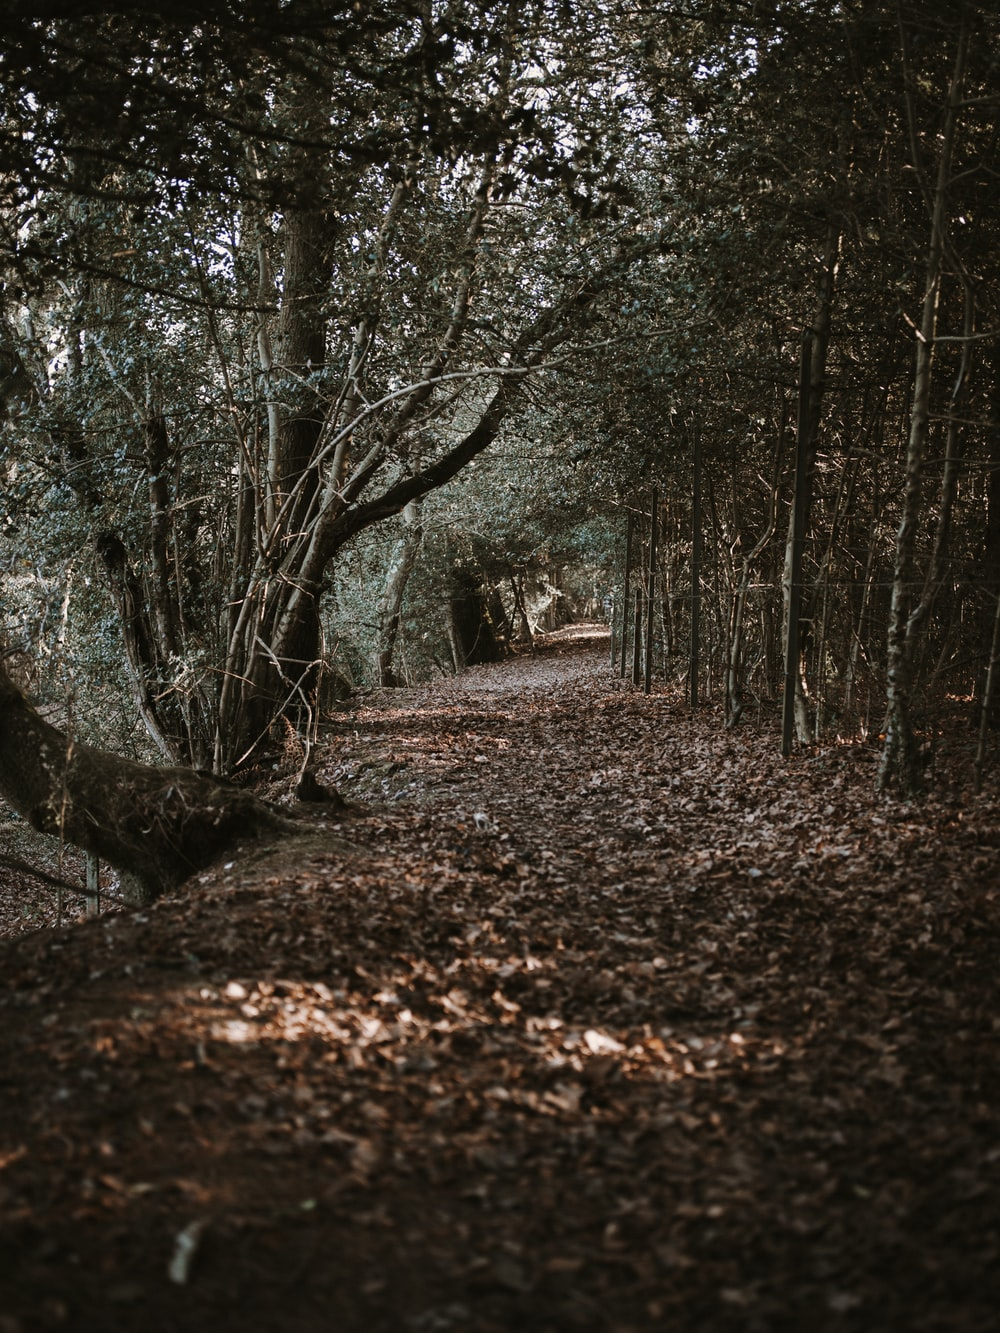 pathway underneath trees with dried leaves